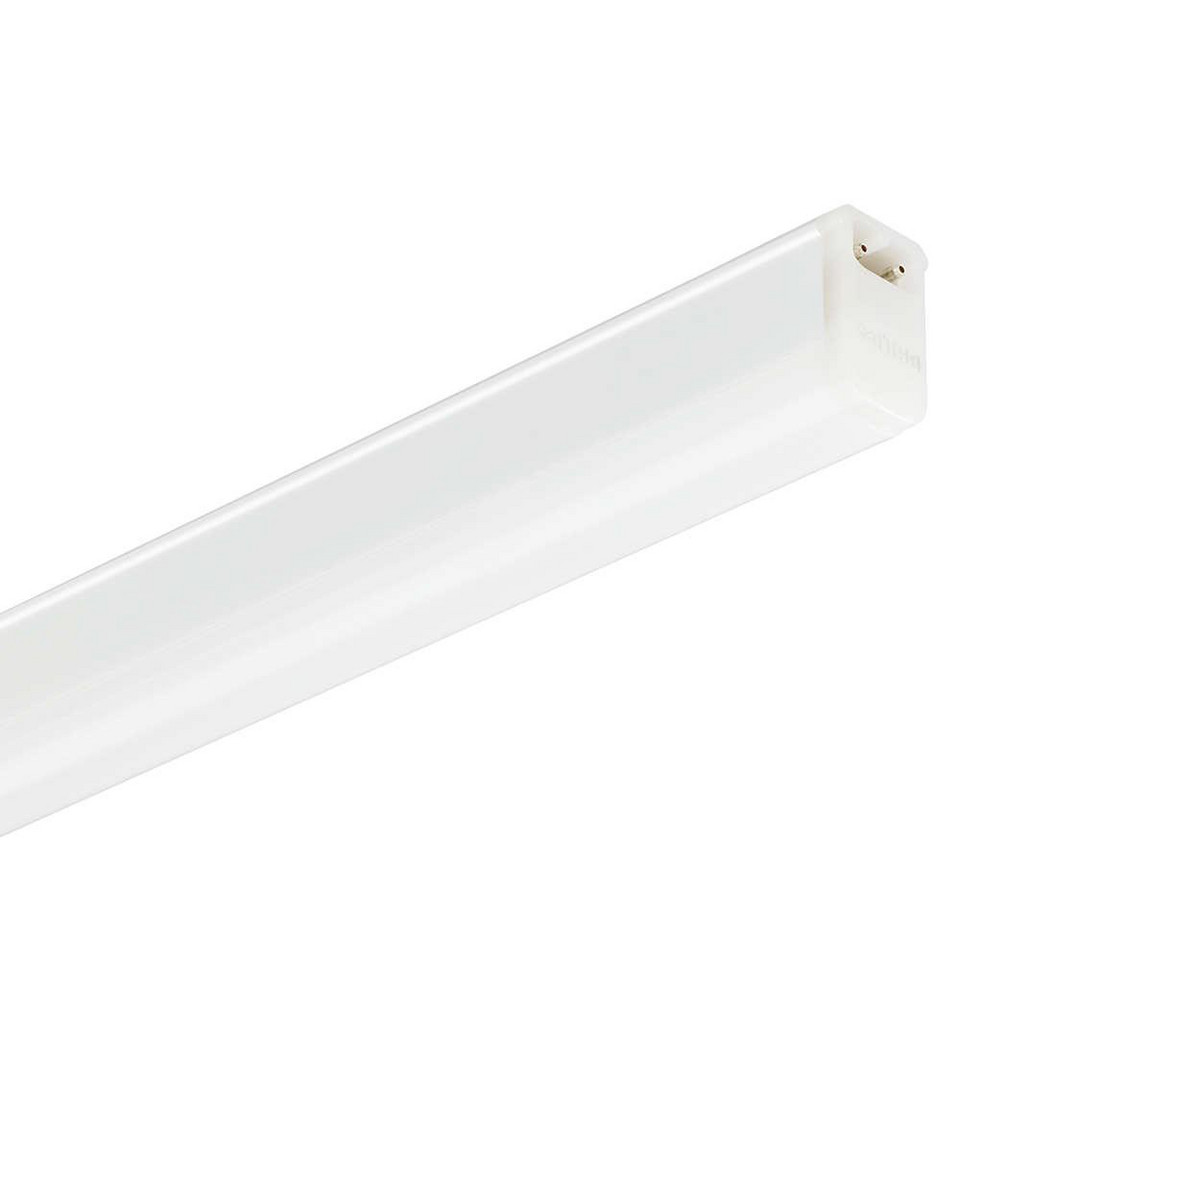 Philips Ledinaire Pentura Mini LED Gen3 BN132C 950lm/840 900mm